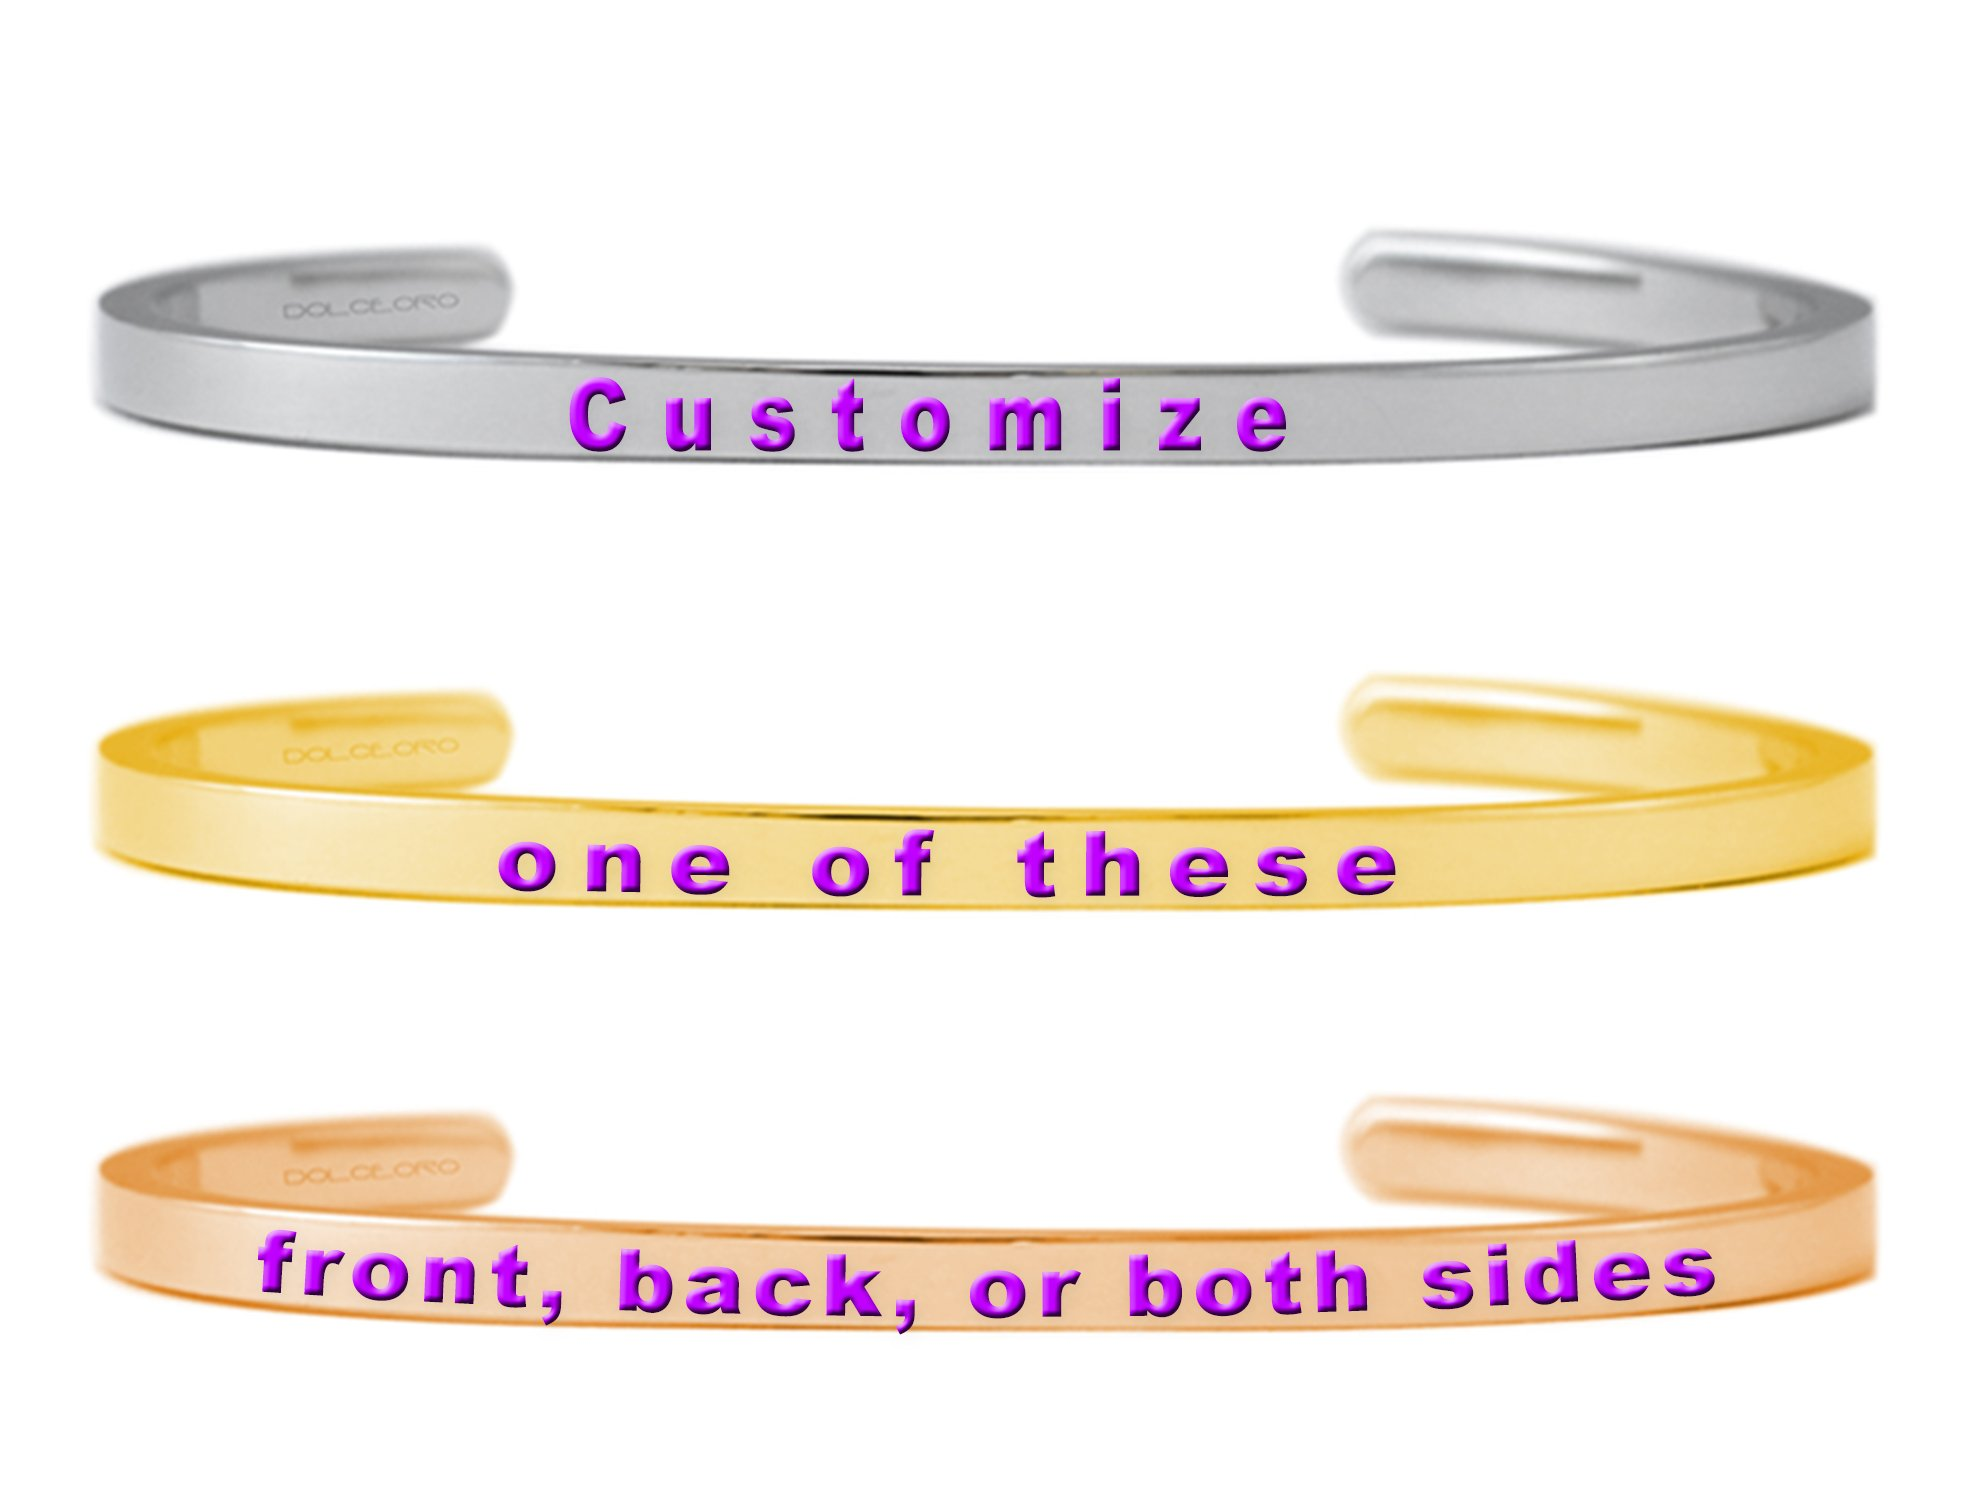 Dolceoro Personalized Mantra Bracelet Jewelry - Customize Outside 3mm Wide, Shiny Finish 316L Surgical Steel